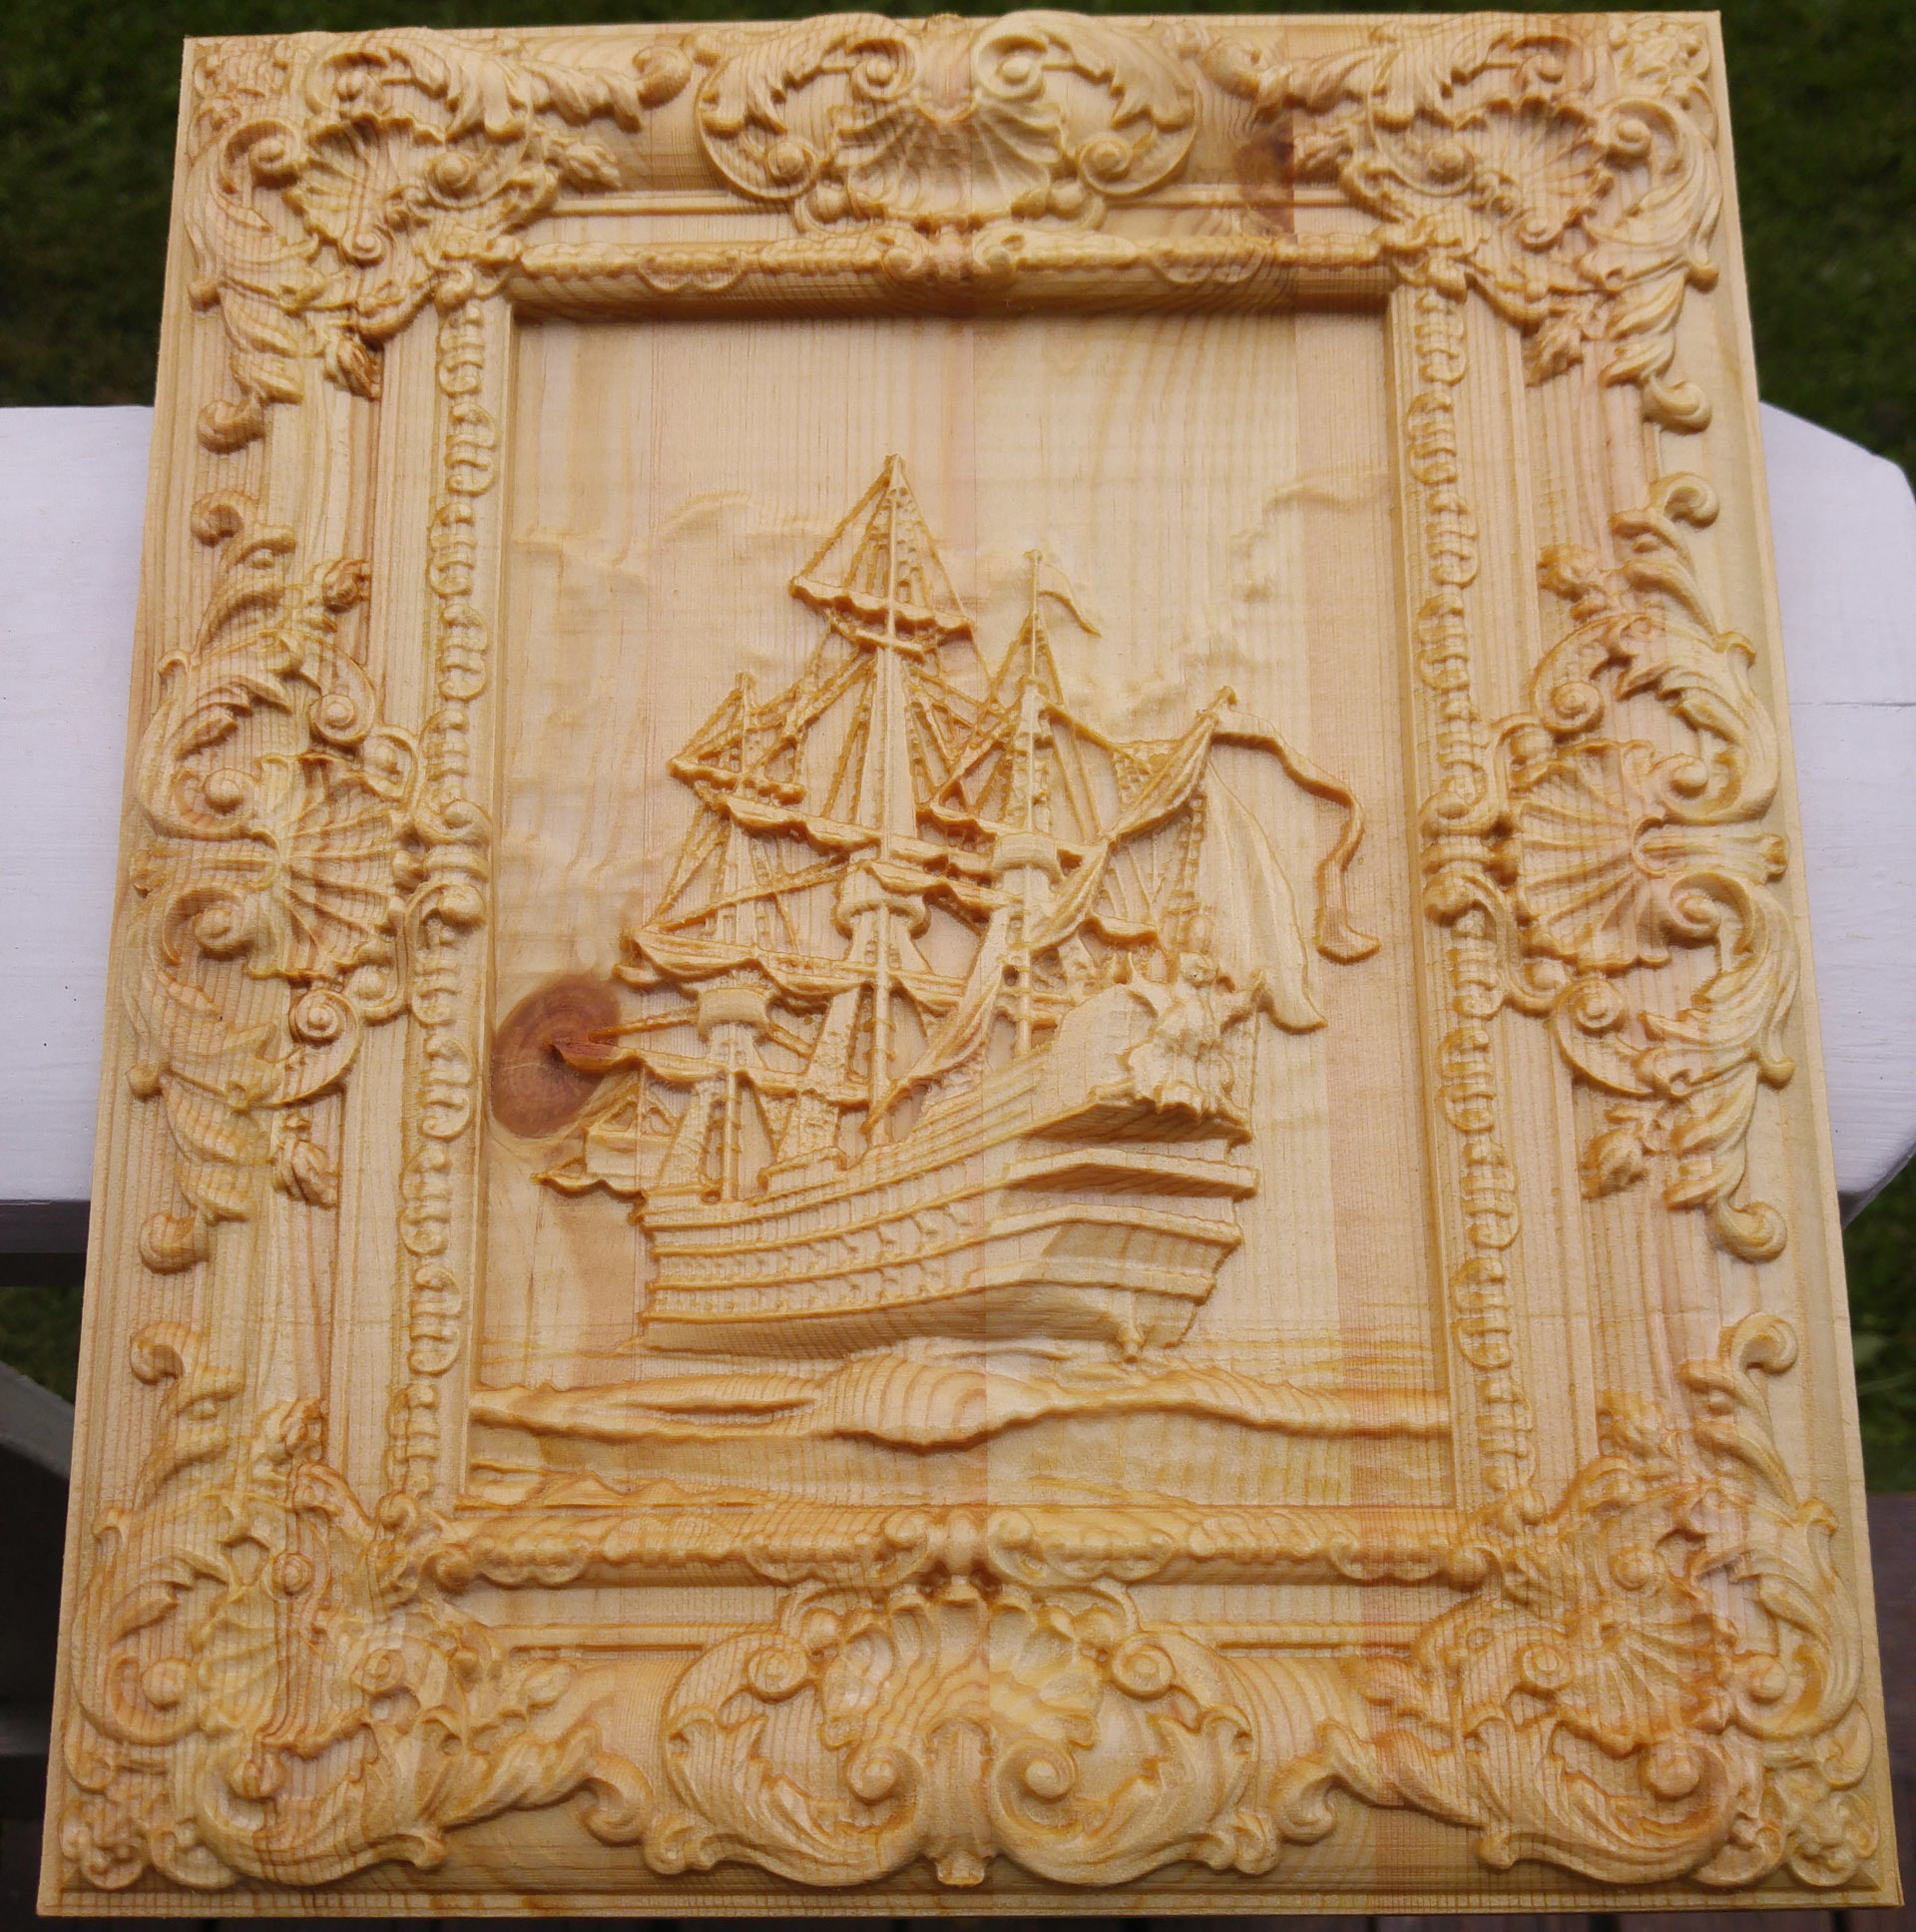 Latest attempt at relief carving projects inventables